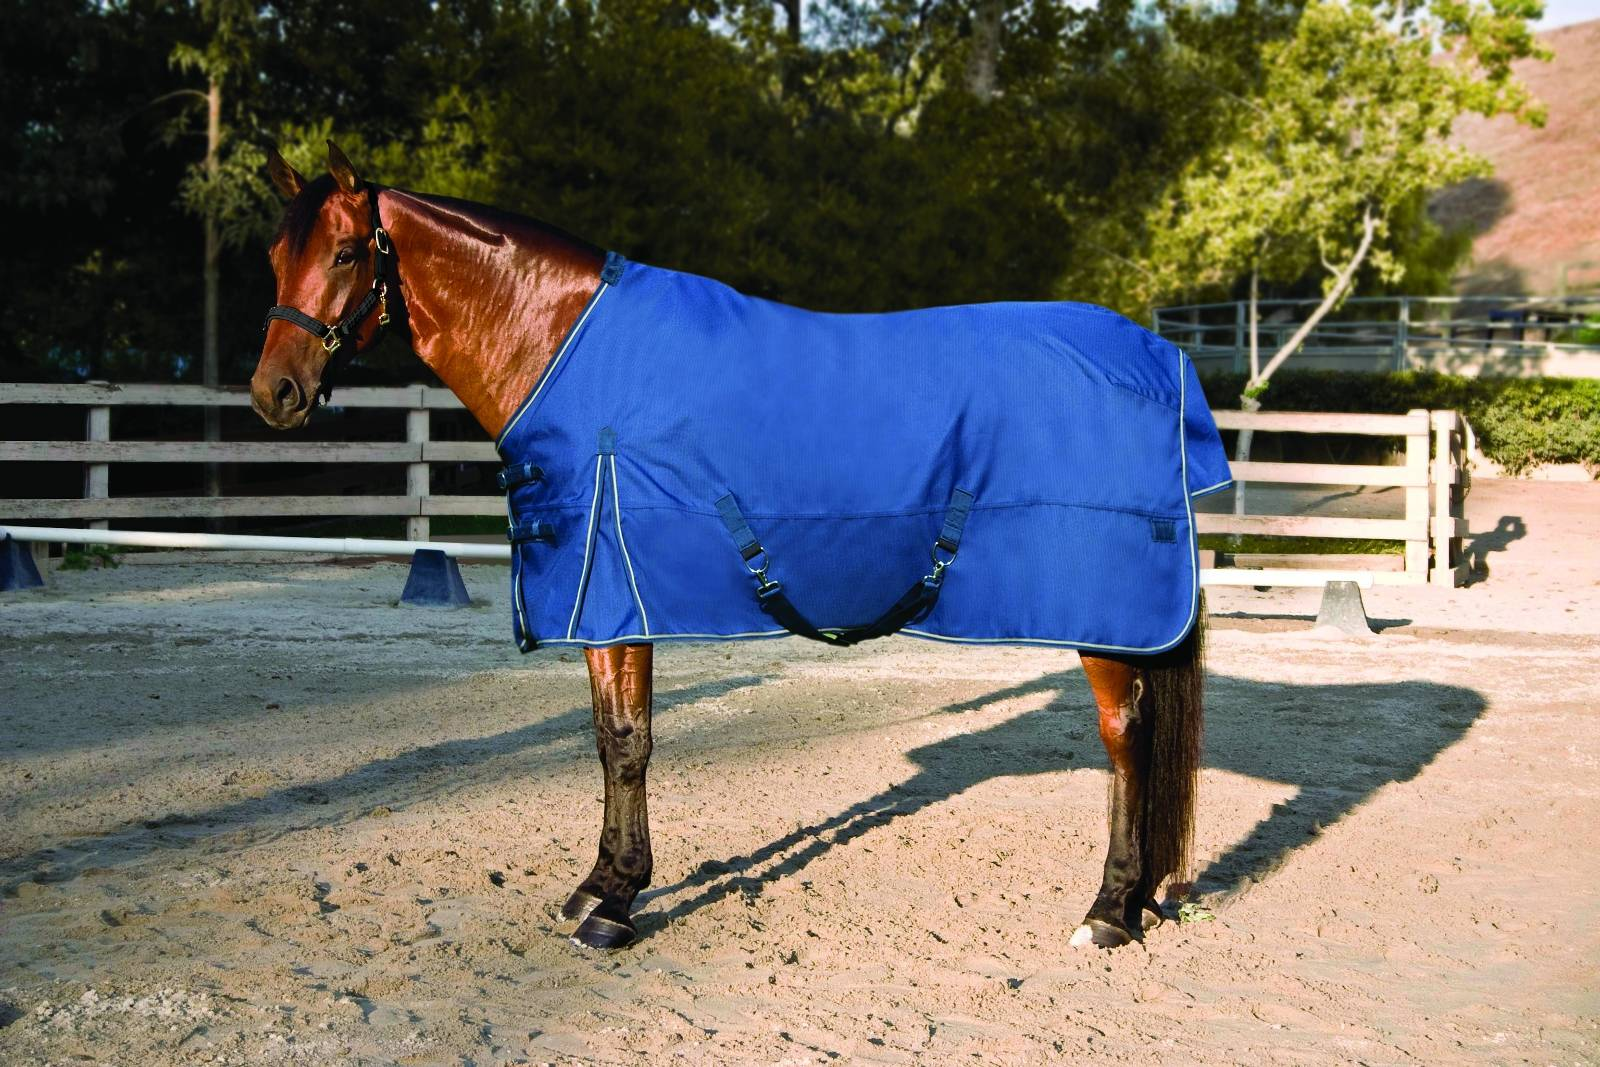 Kensington All Around HD Lightweight Turnout Blanket - FREE Kensington Blanket Storage Bag Valued at $45!